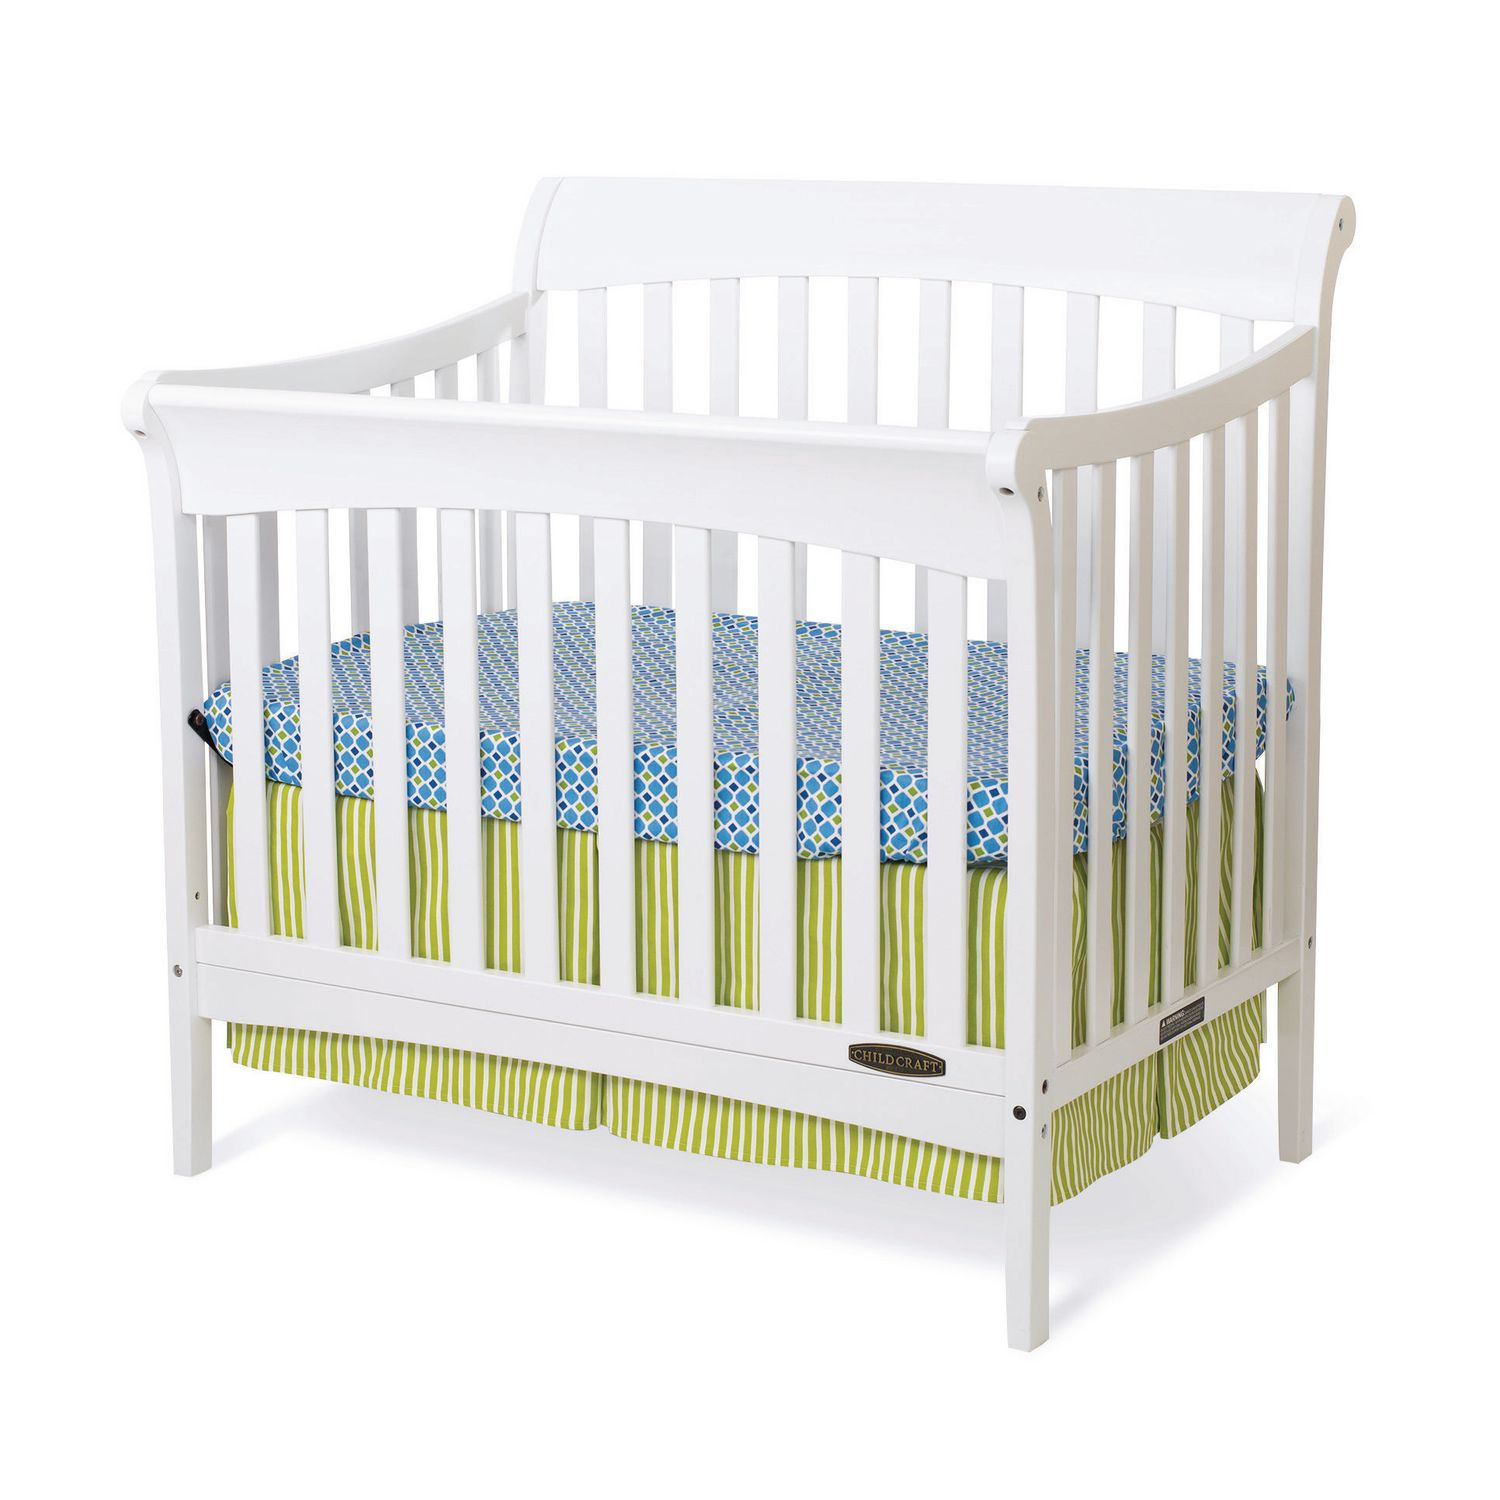 Used crib for sale ottawa - Child Craft Ashton Mini Crib